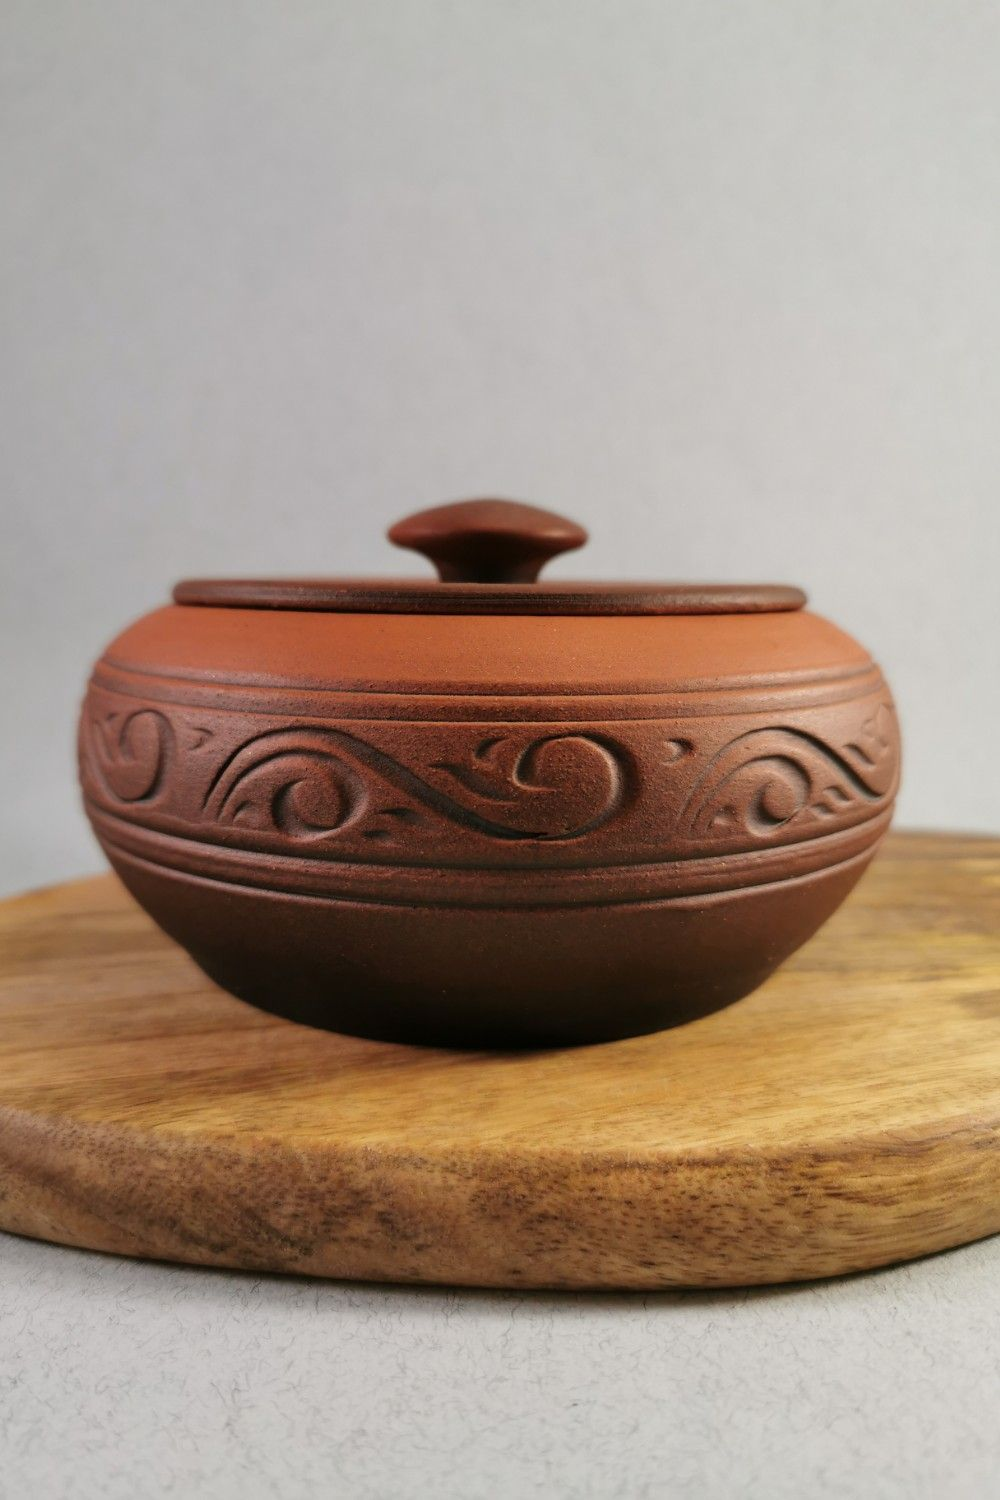 Wheel Thrown Pottery Handmade Casserole Clay Cooking Pot Small Pottery Bowl With Lid Pottery Lidded Jar Terracotta Kitchen Decor Farmhouse In 2020 Pottery Bowls Thrown Pottery Wheel Thrown Pottery